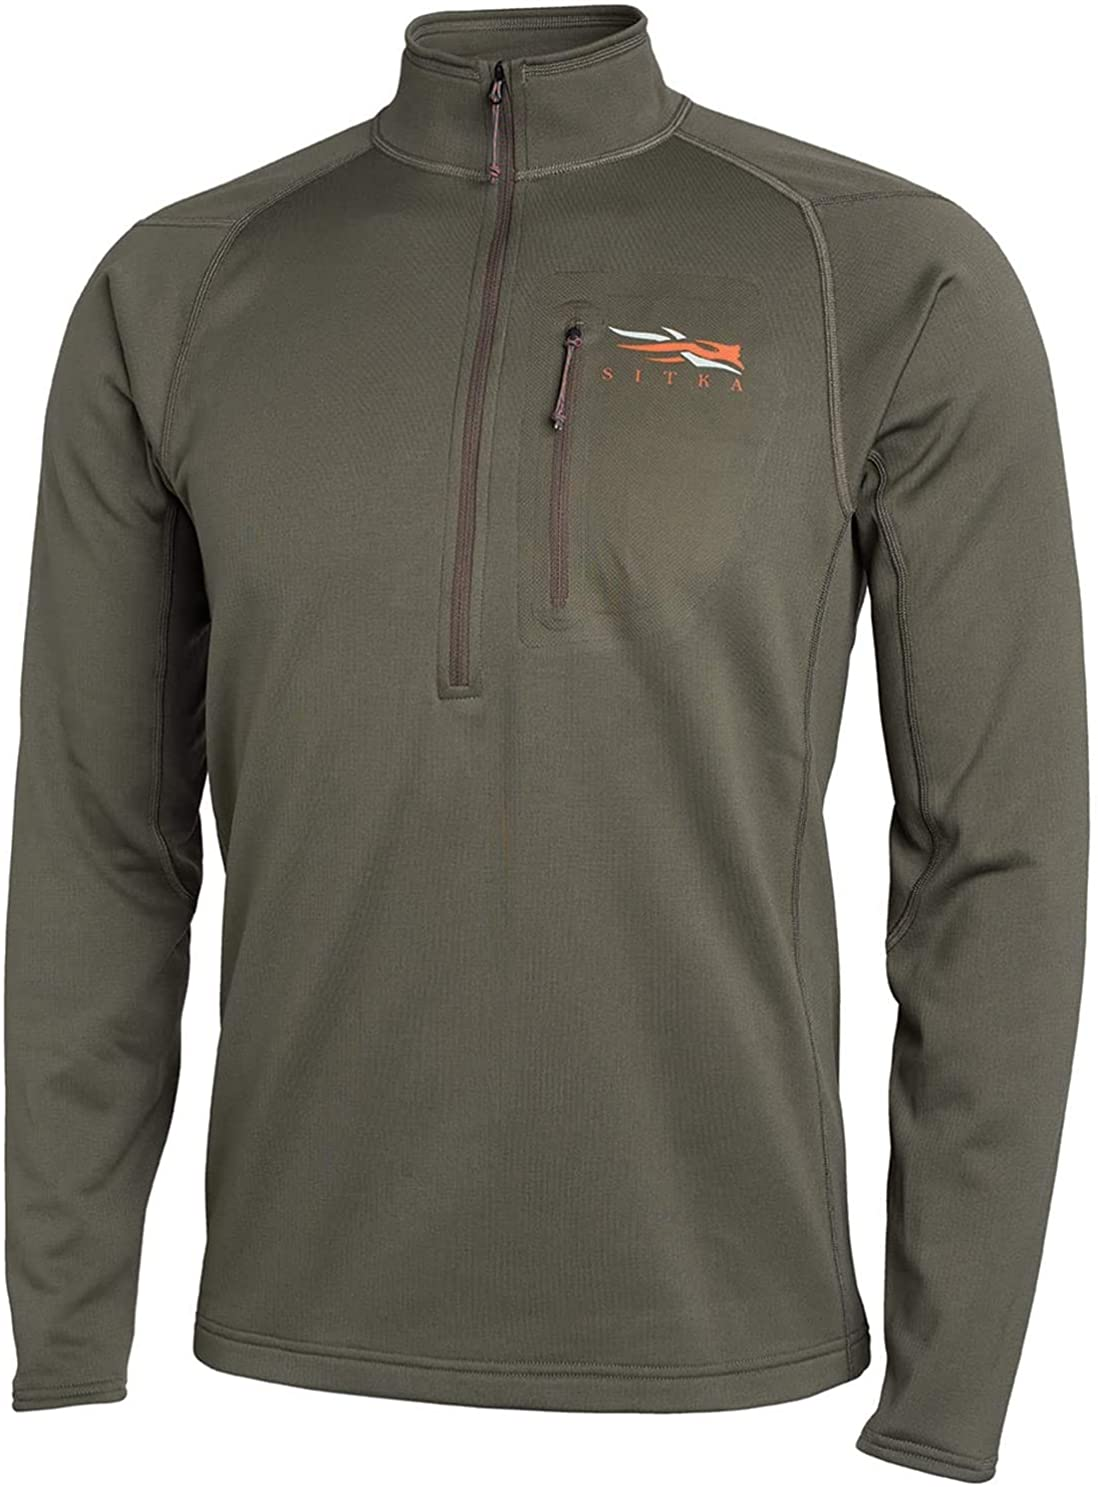 SITKA Gear Men's Core Midweight Zip-T Quick-Dry Odor-Free Long Sleeve Hunting Shirt, Pyrite, Medium Tall